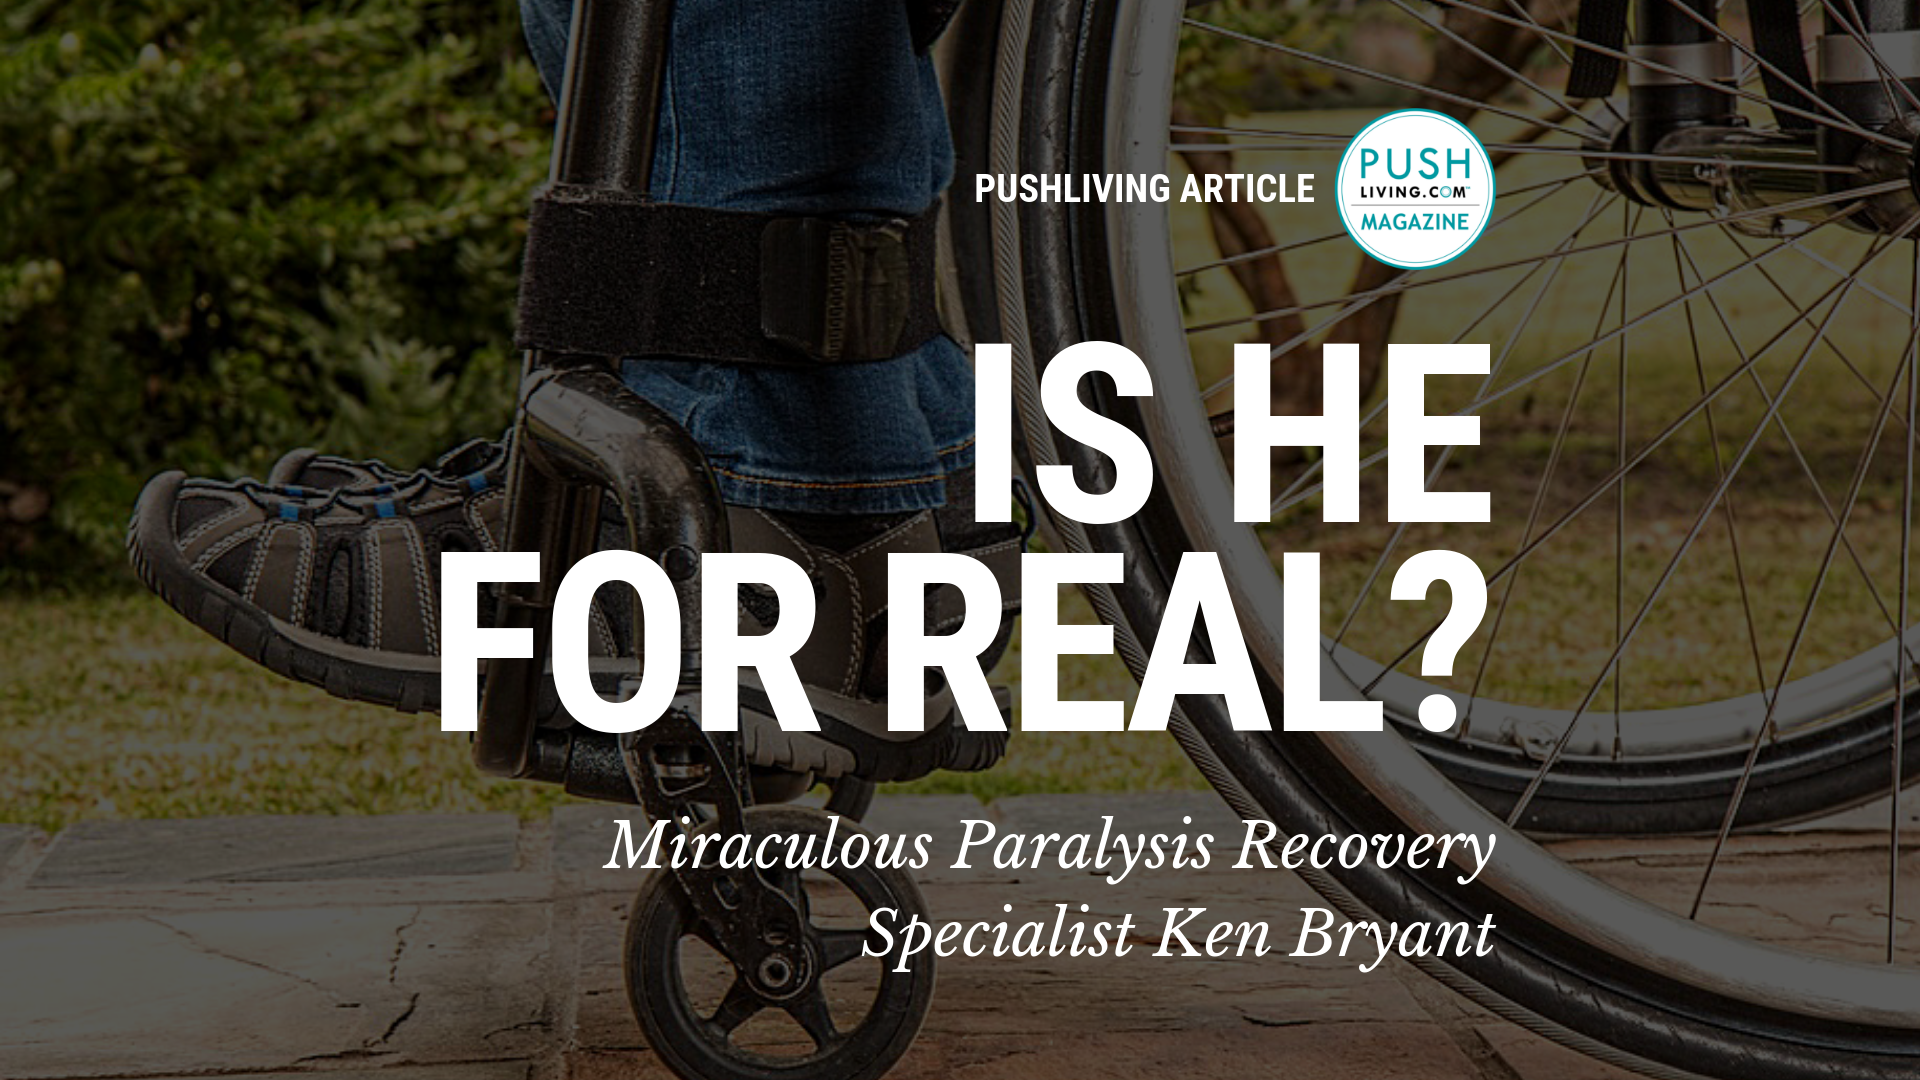 9 5 19 Cover - Miraculous Paralysis Recovery Specialist Ken Bryant - Is He for Real?